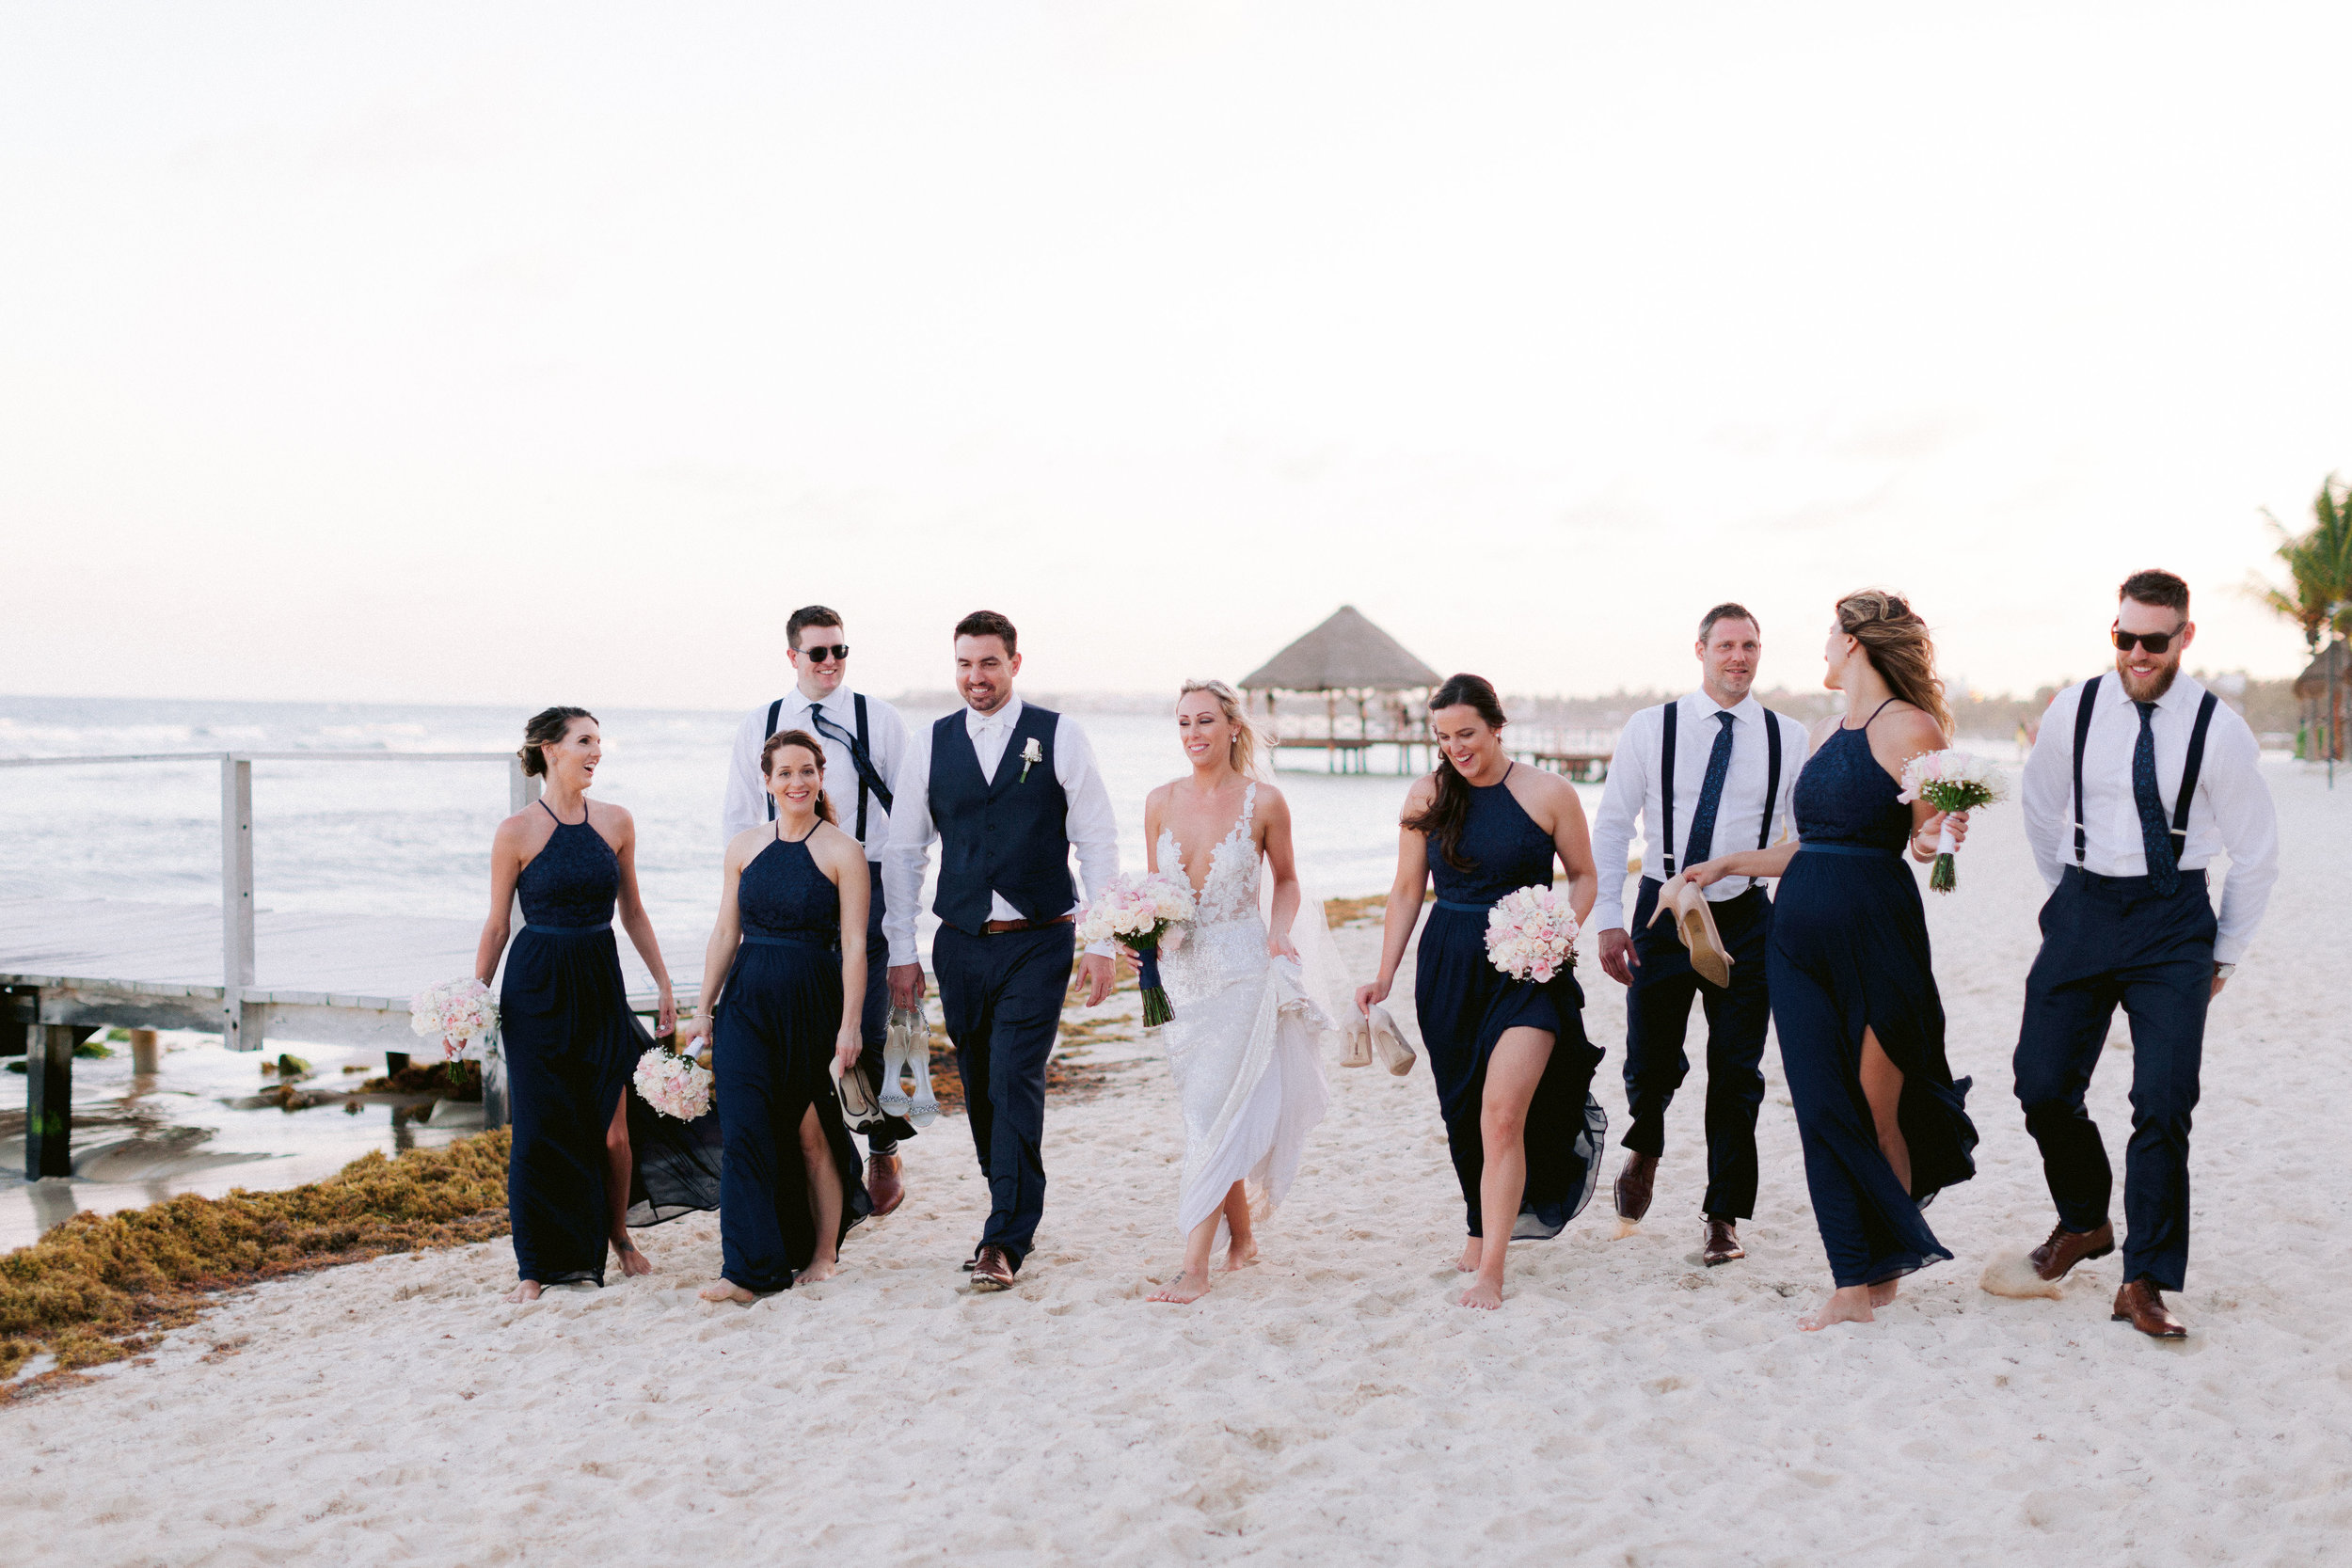 Kim_Jeff_Cancun Wedding_Portraits_Kurtz_Orpia (152 of 178).jpg